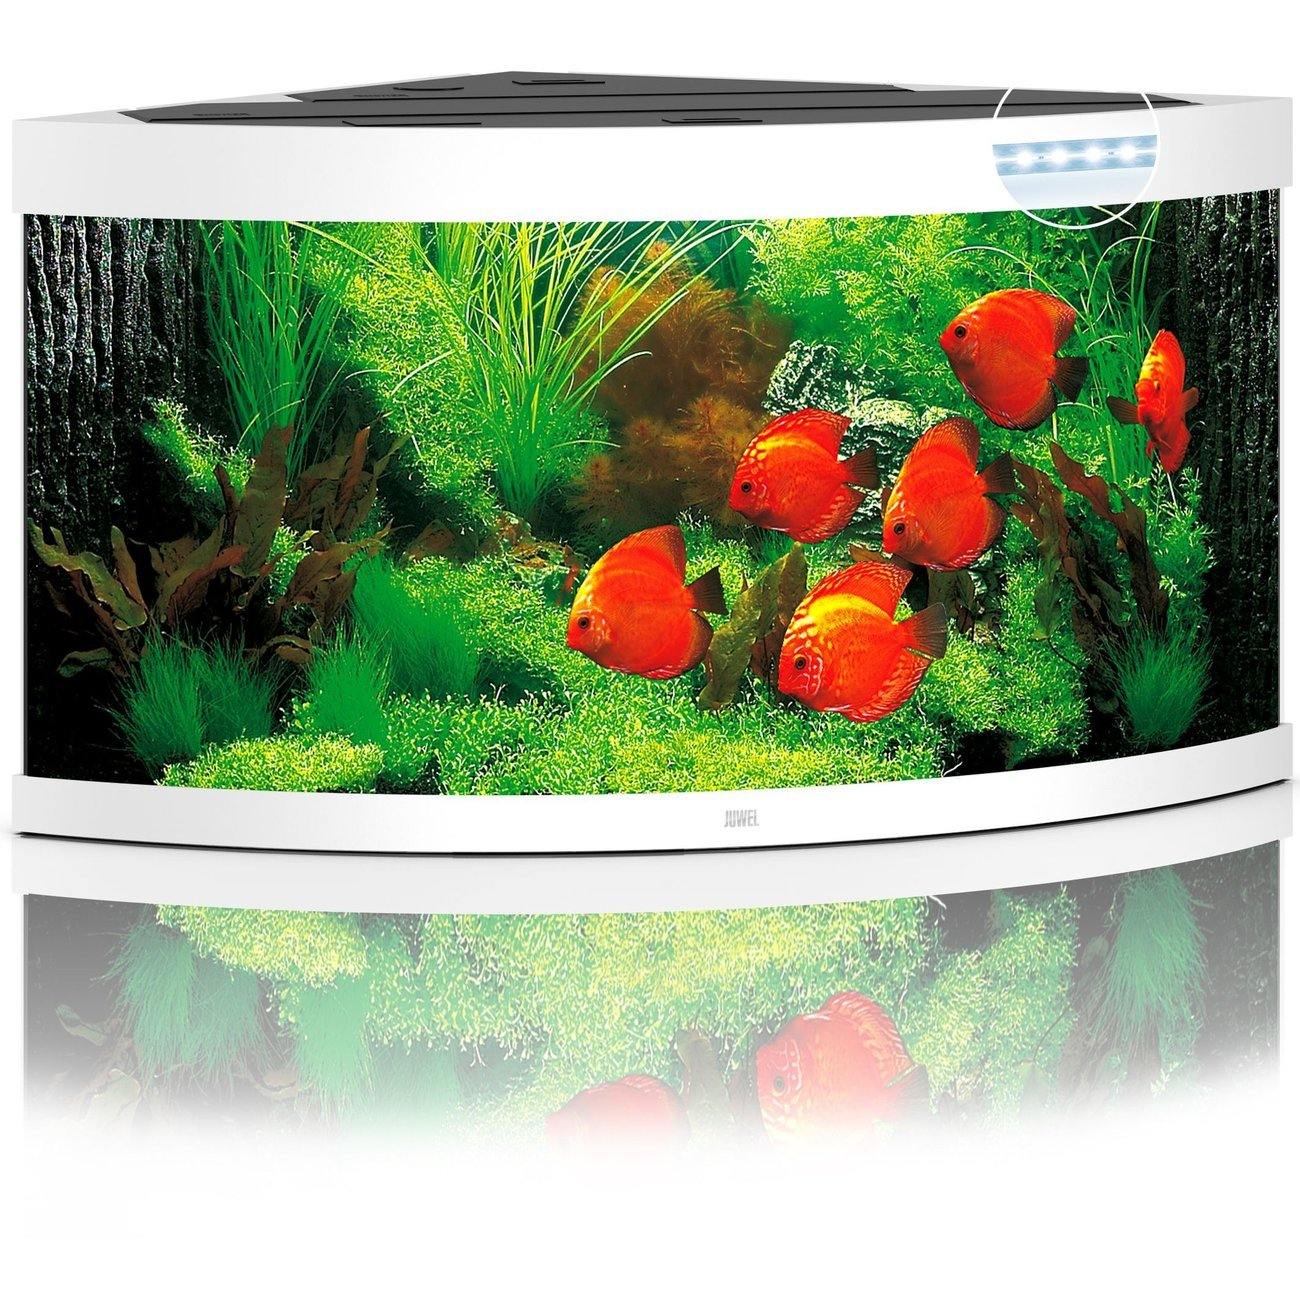 Juwel Trigon 350 LED Aquarium, Bild 4